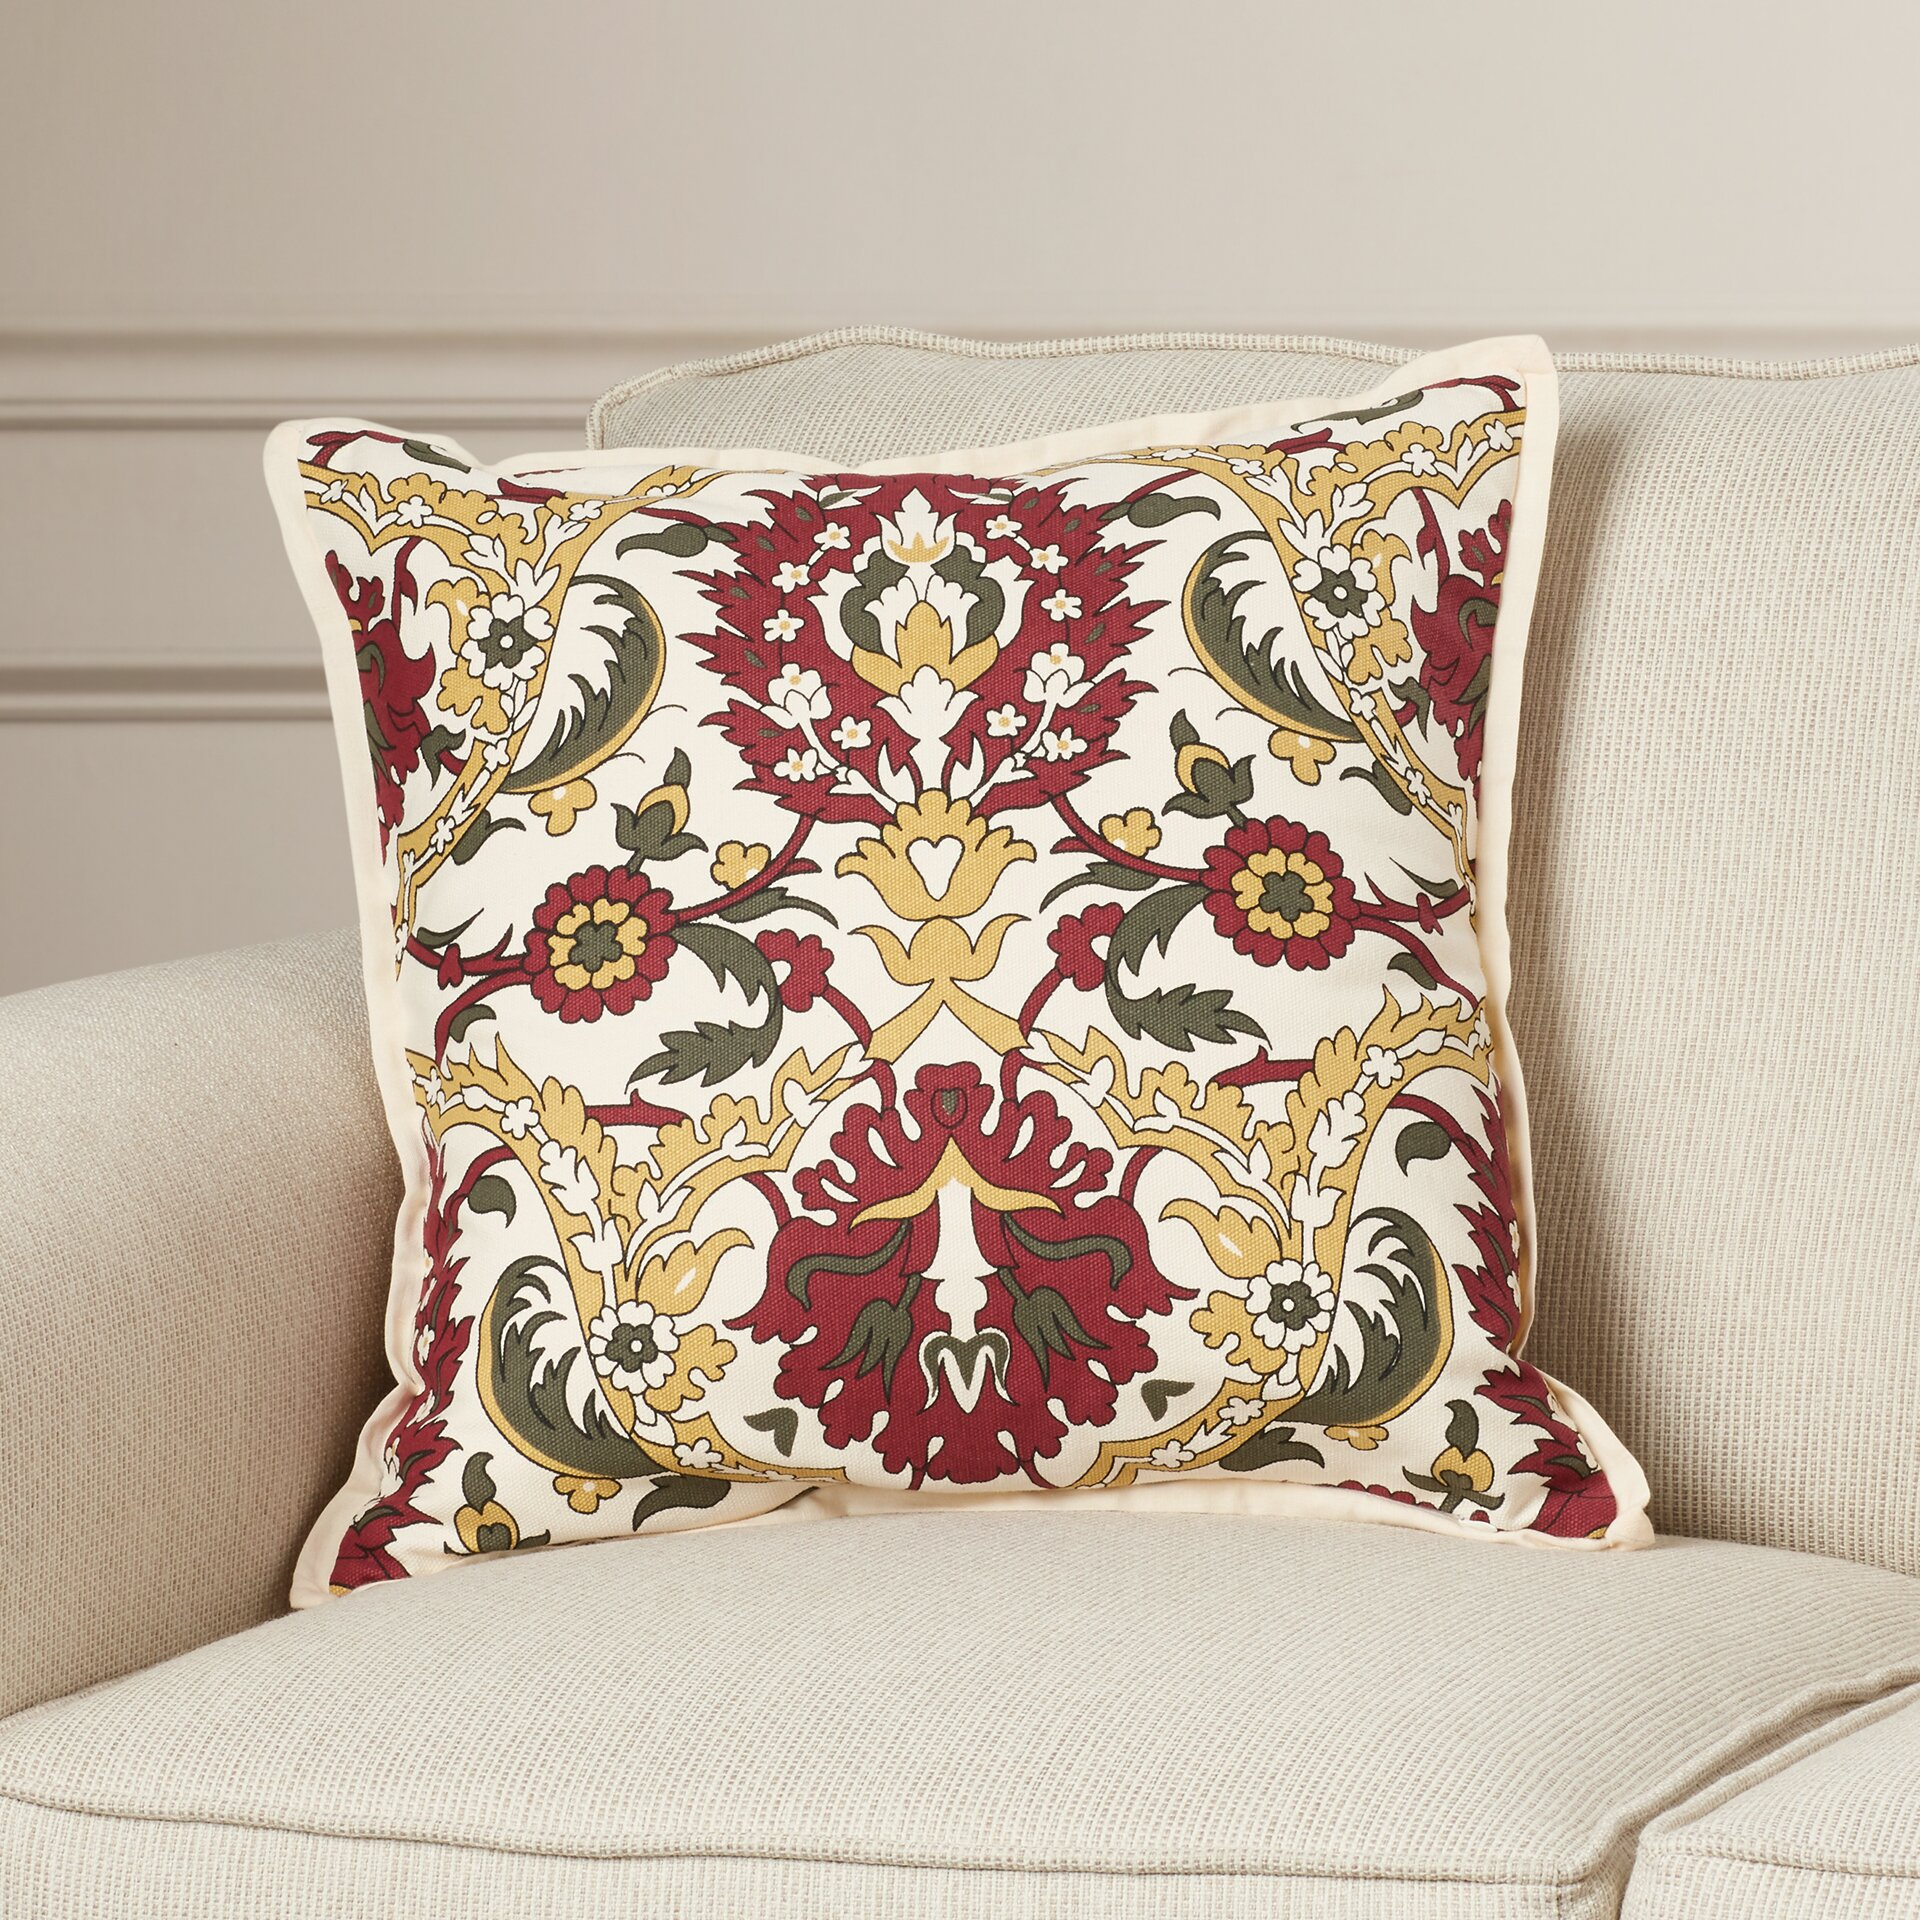 Darby Home Co Coeur Down Throw Pillow Wayfair